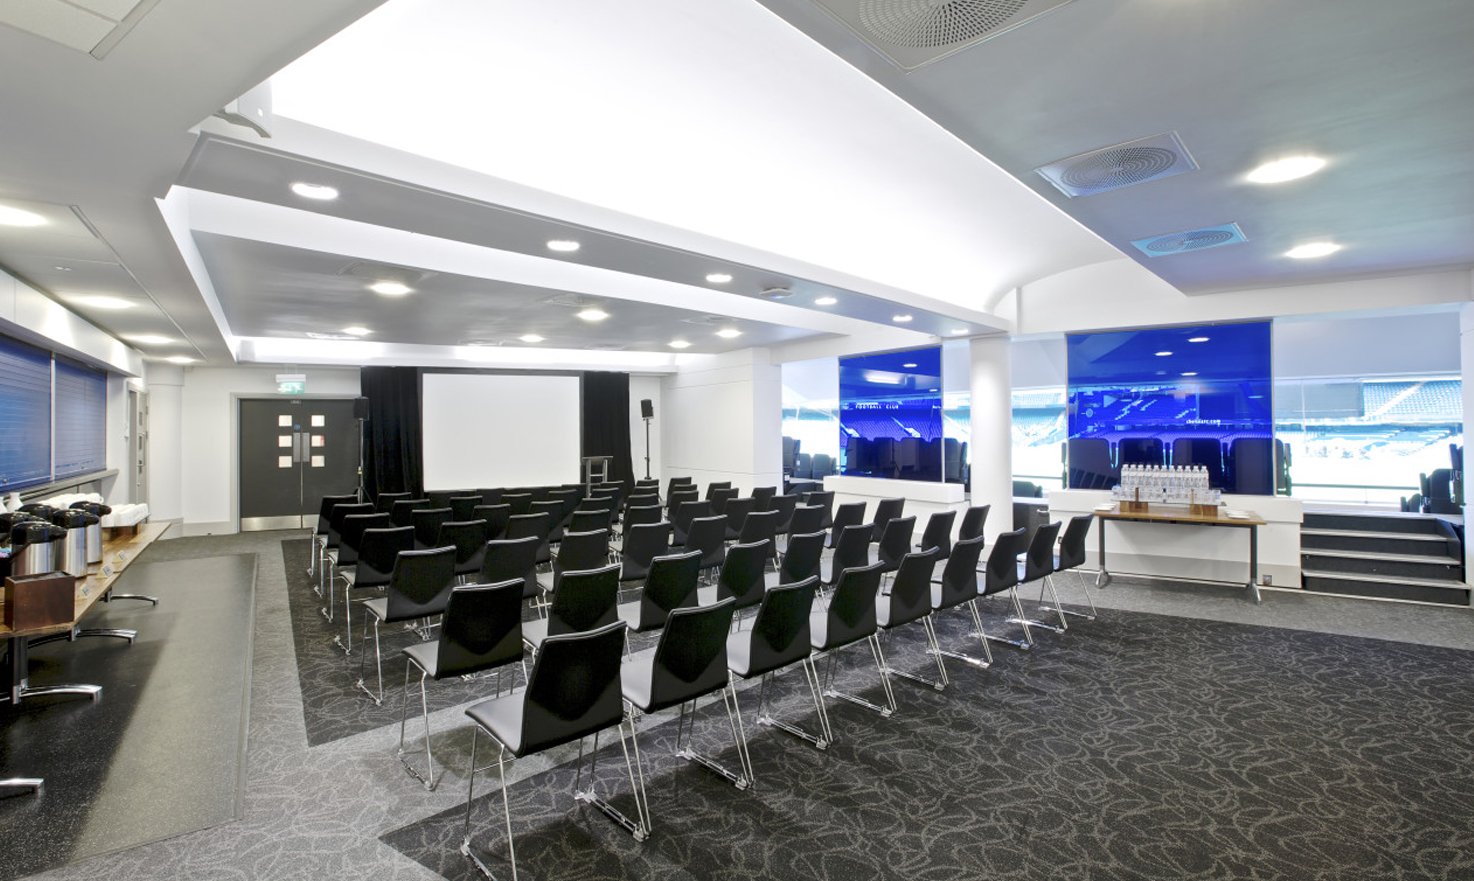 Right Angle Corporate Events - Chelsea Football Club Venue